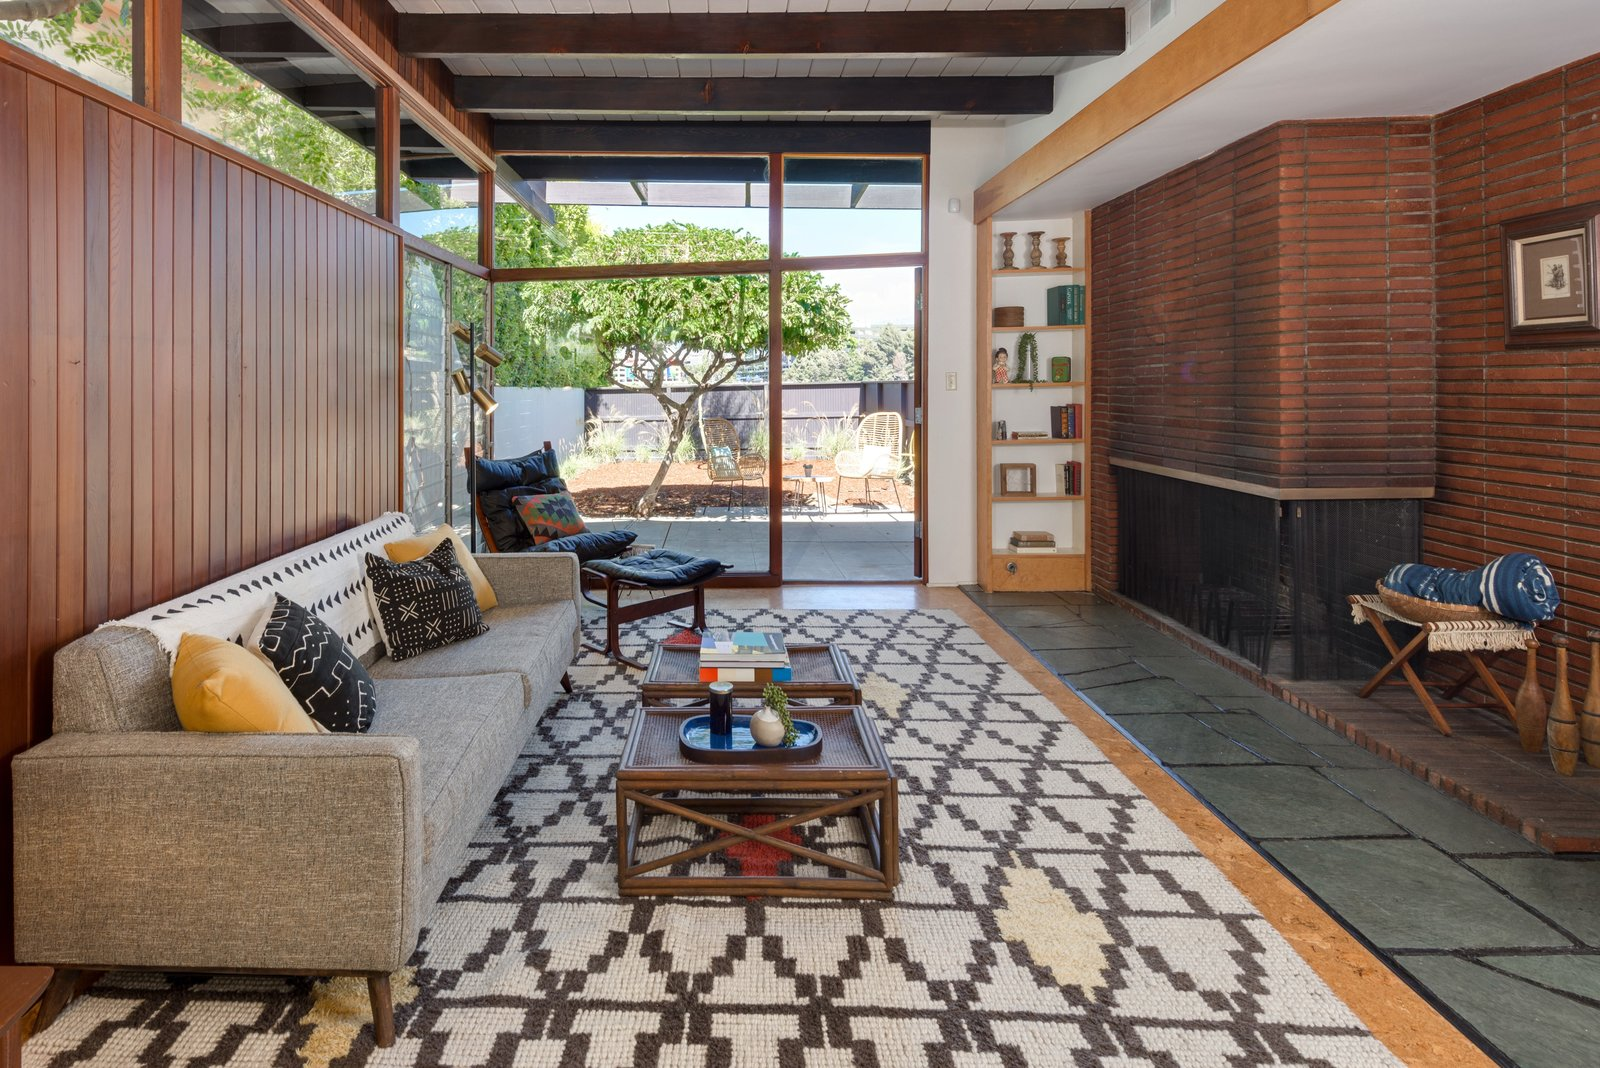 Living Room, Slate Floor, Sofa, Shelves, Coffee Tables, Rug Floor, Wood Burning Fireplace, Corner Fireplace, Cork Floor, and Chair The room extends straight out to the yard, with a wall of glass creating a seamless connection.  Photo 5 of 17 in Snag This Hollywood Hills Midcentury Home For $1M